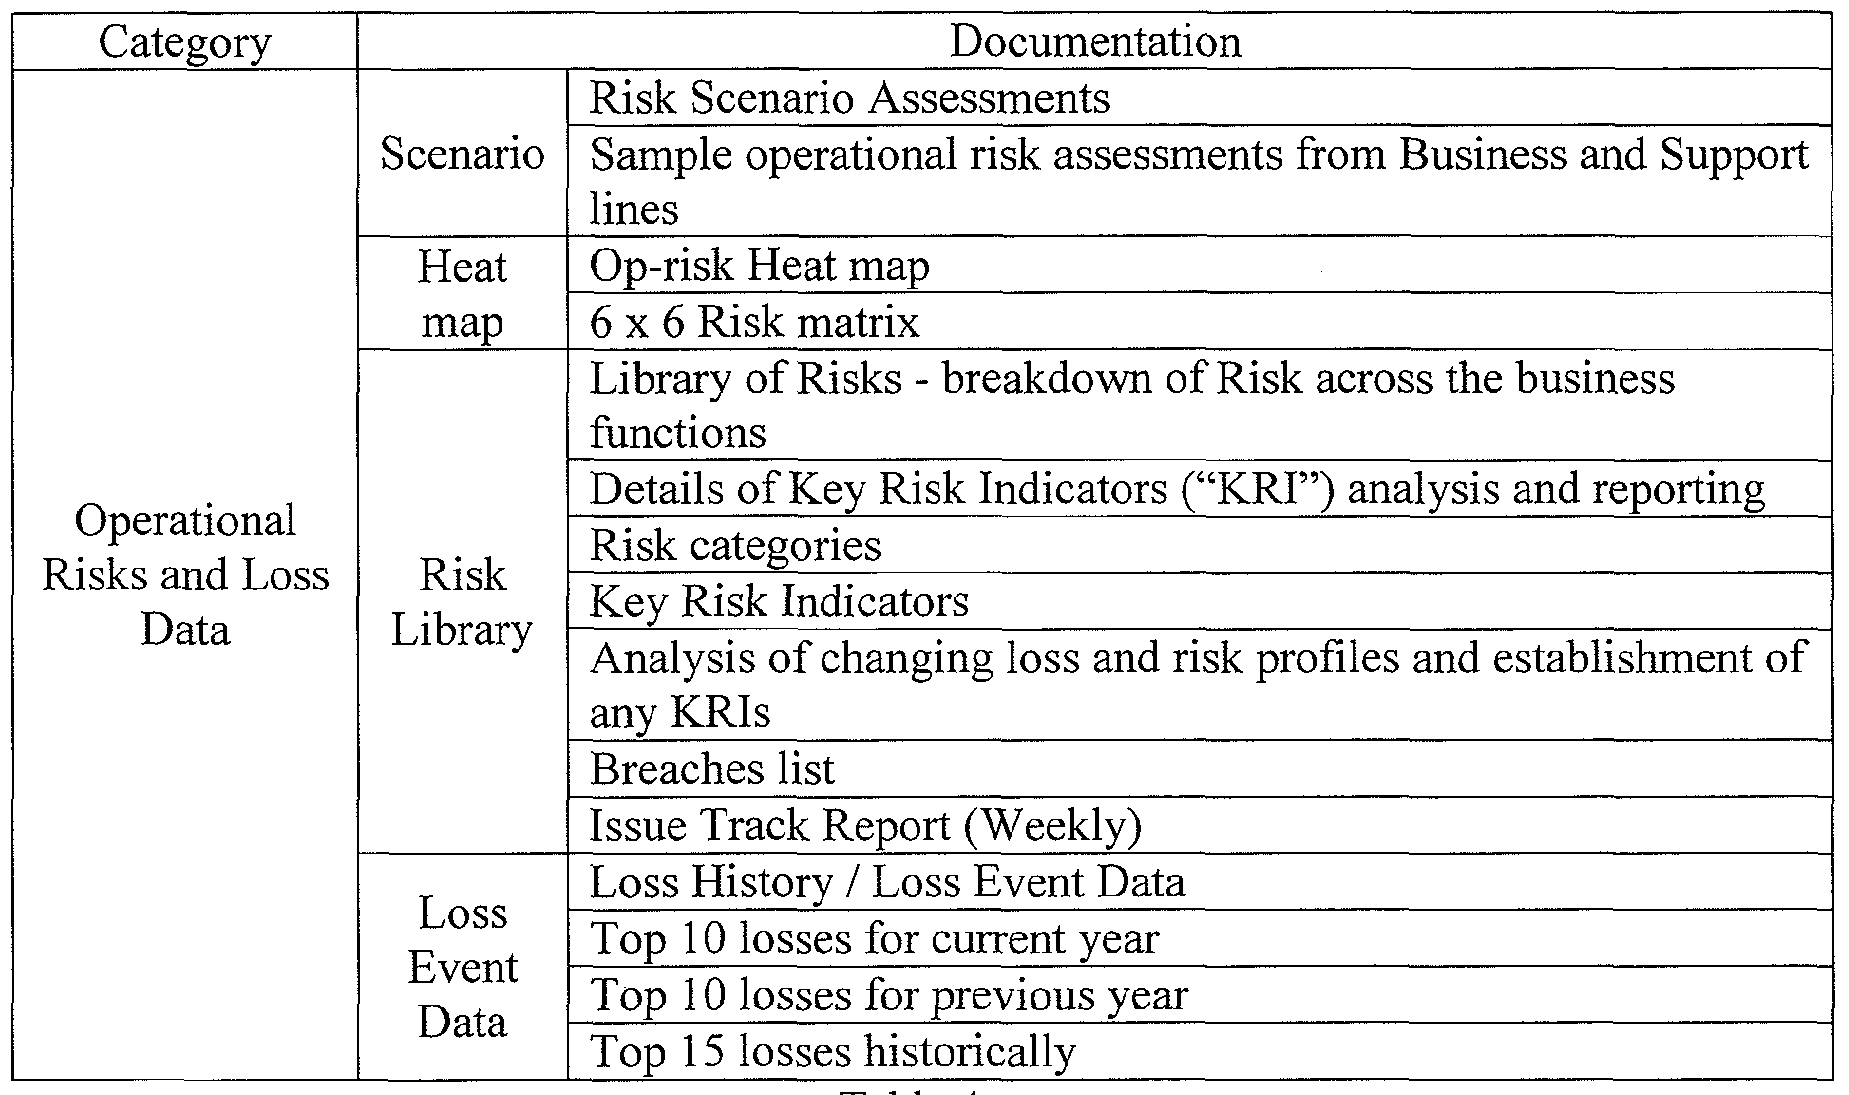 operational risk assessment template - wo2009140592a1 method and system of insuring